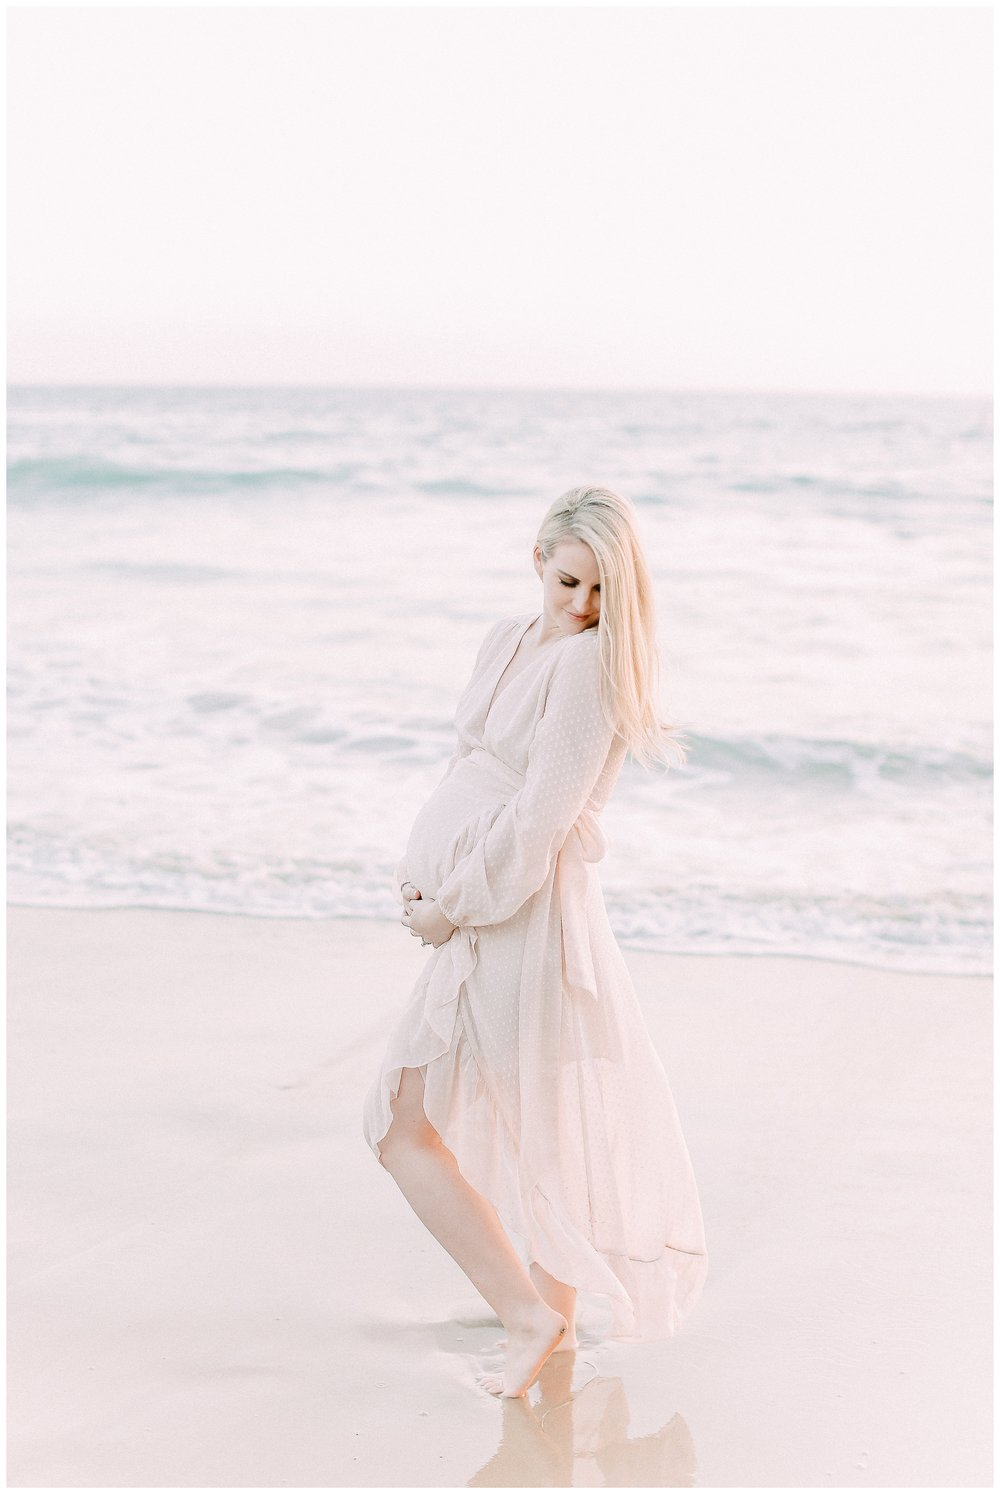 Little_Corona_Beach_Maternity_Session_Orange_county_family_photographer_cori_kleckner_photography_laguna_beach_family_session_0742.jpg